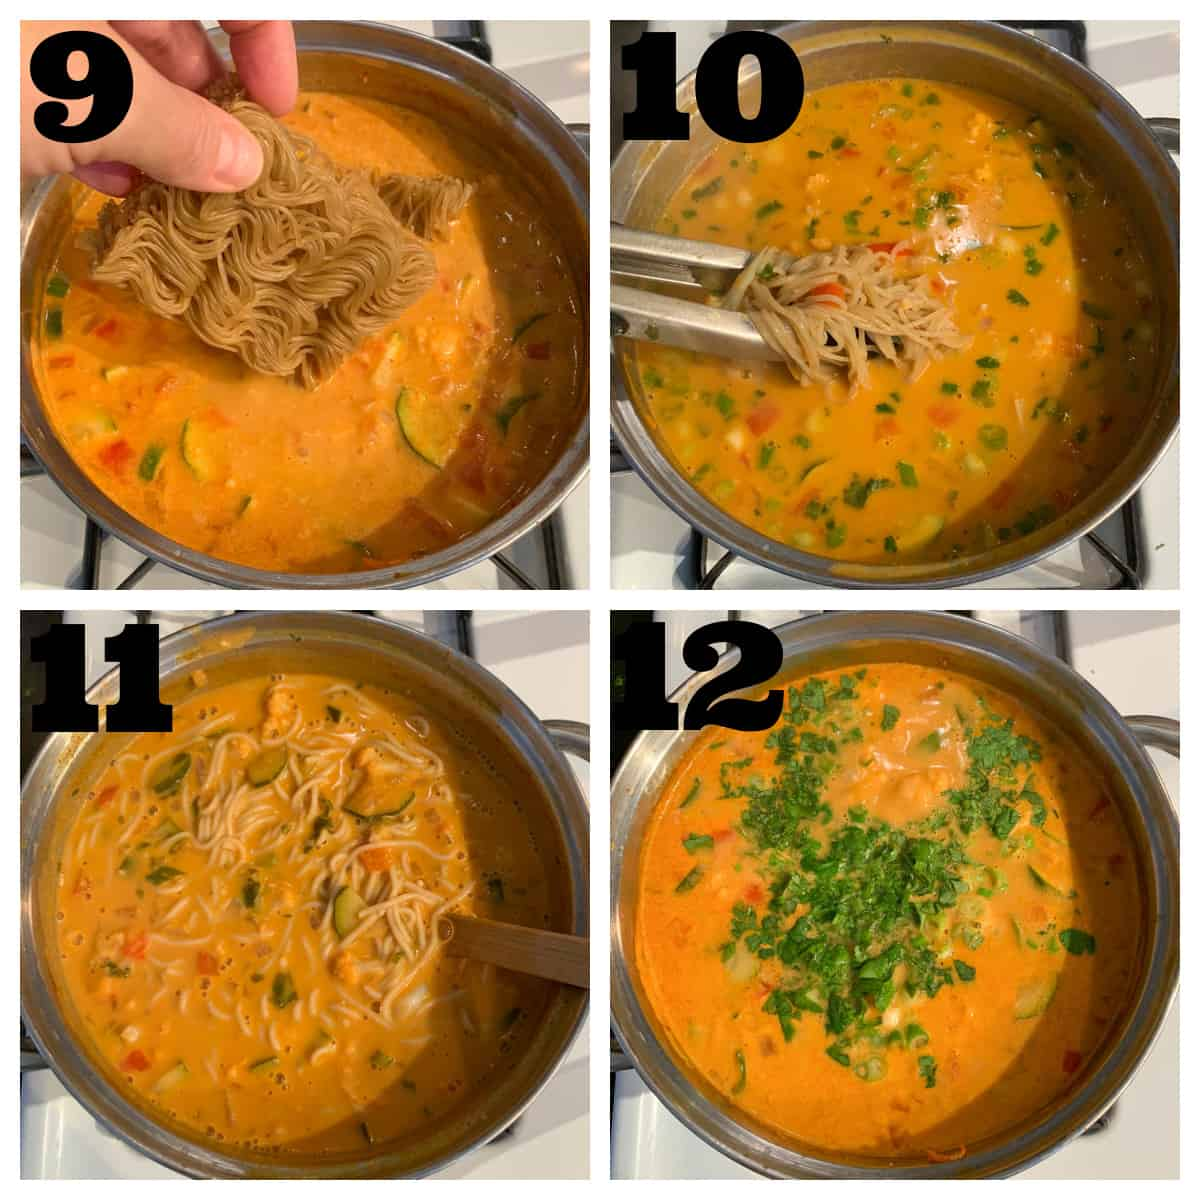 4 photo collage of adding noodles and garnishes to the soup pot.